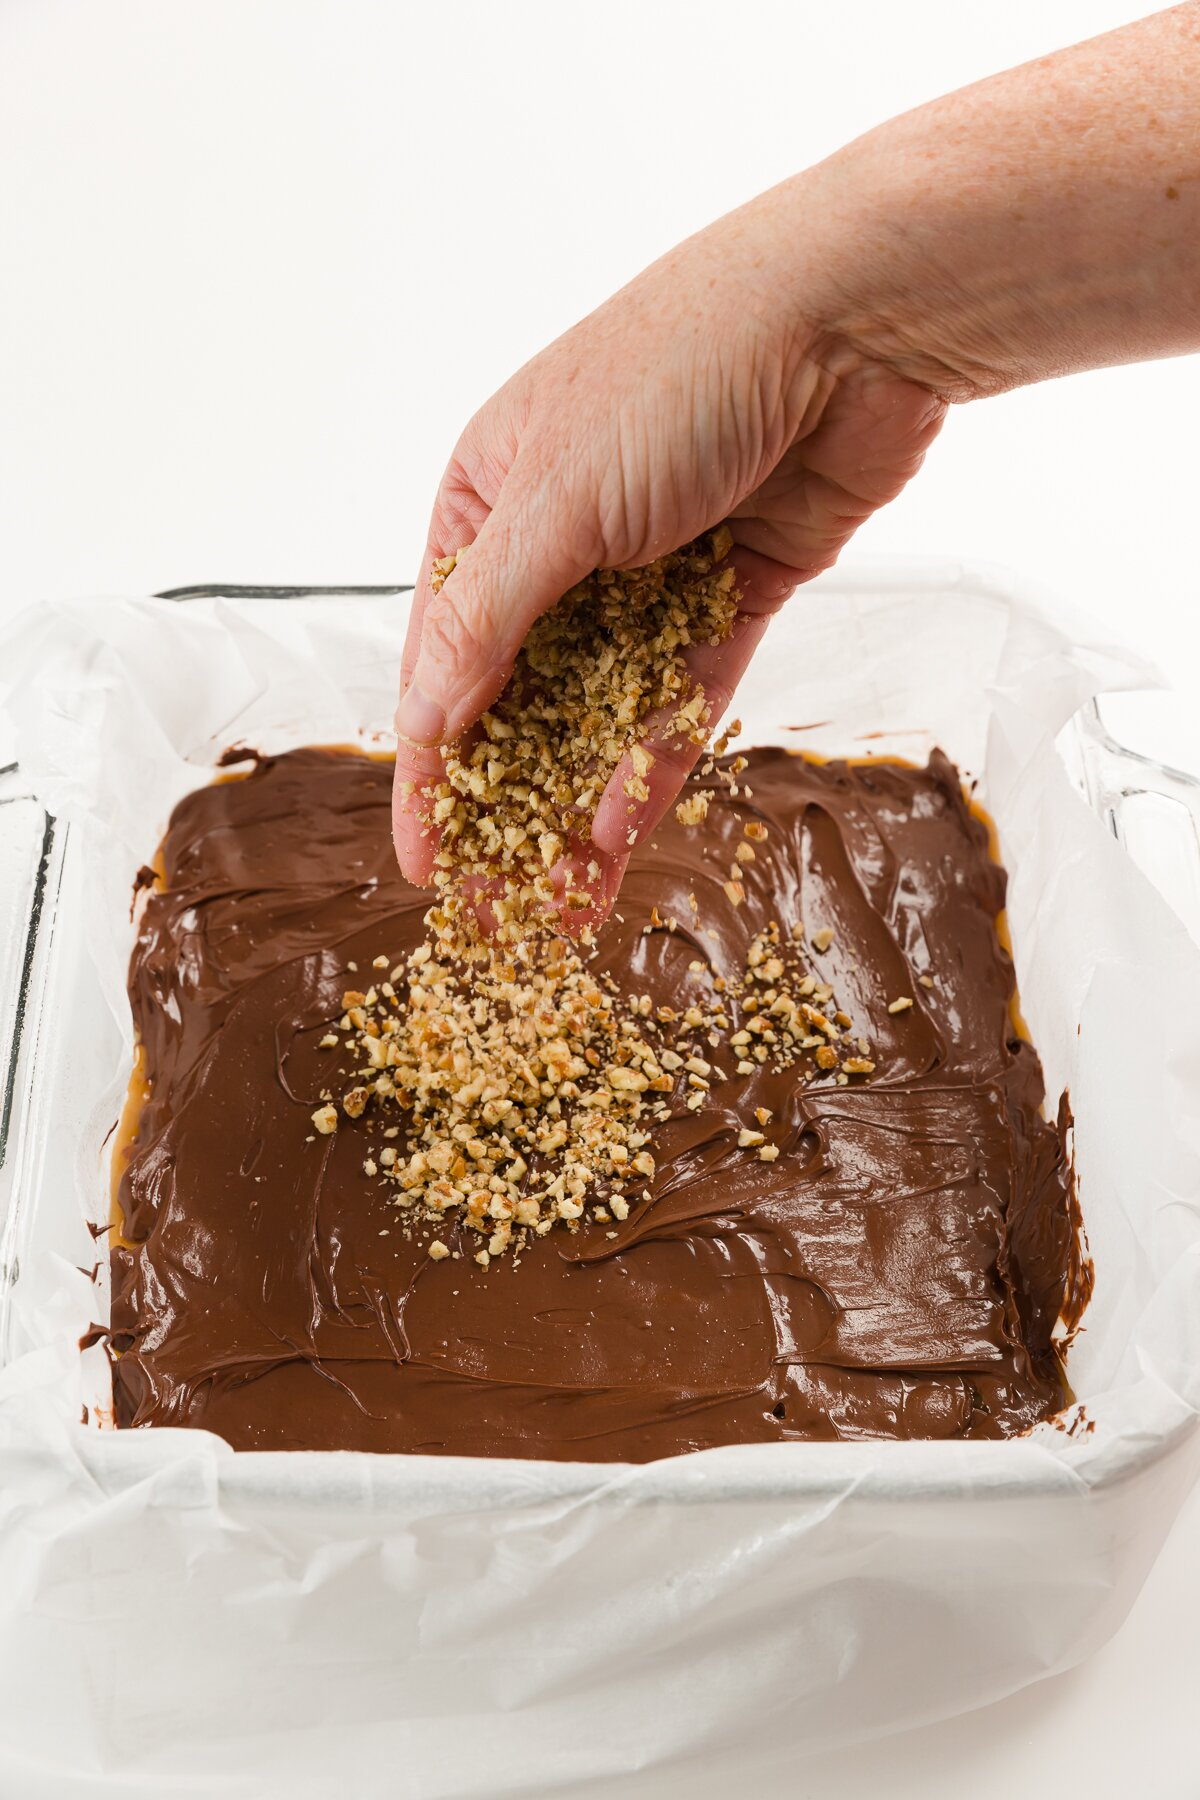 Sprinkling nuts over melted chocolate in square baking dish